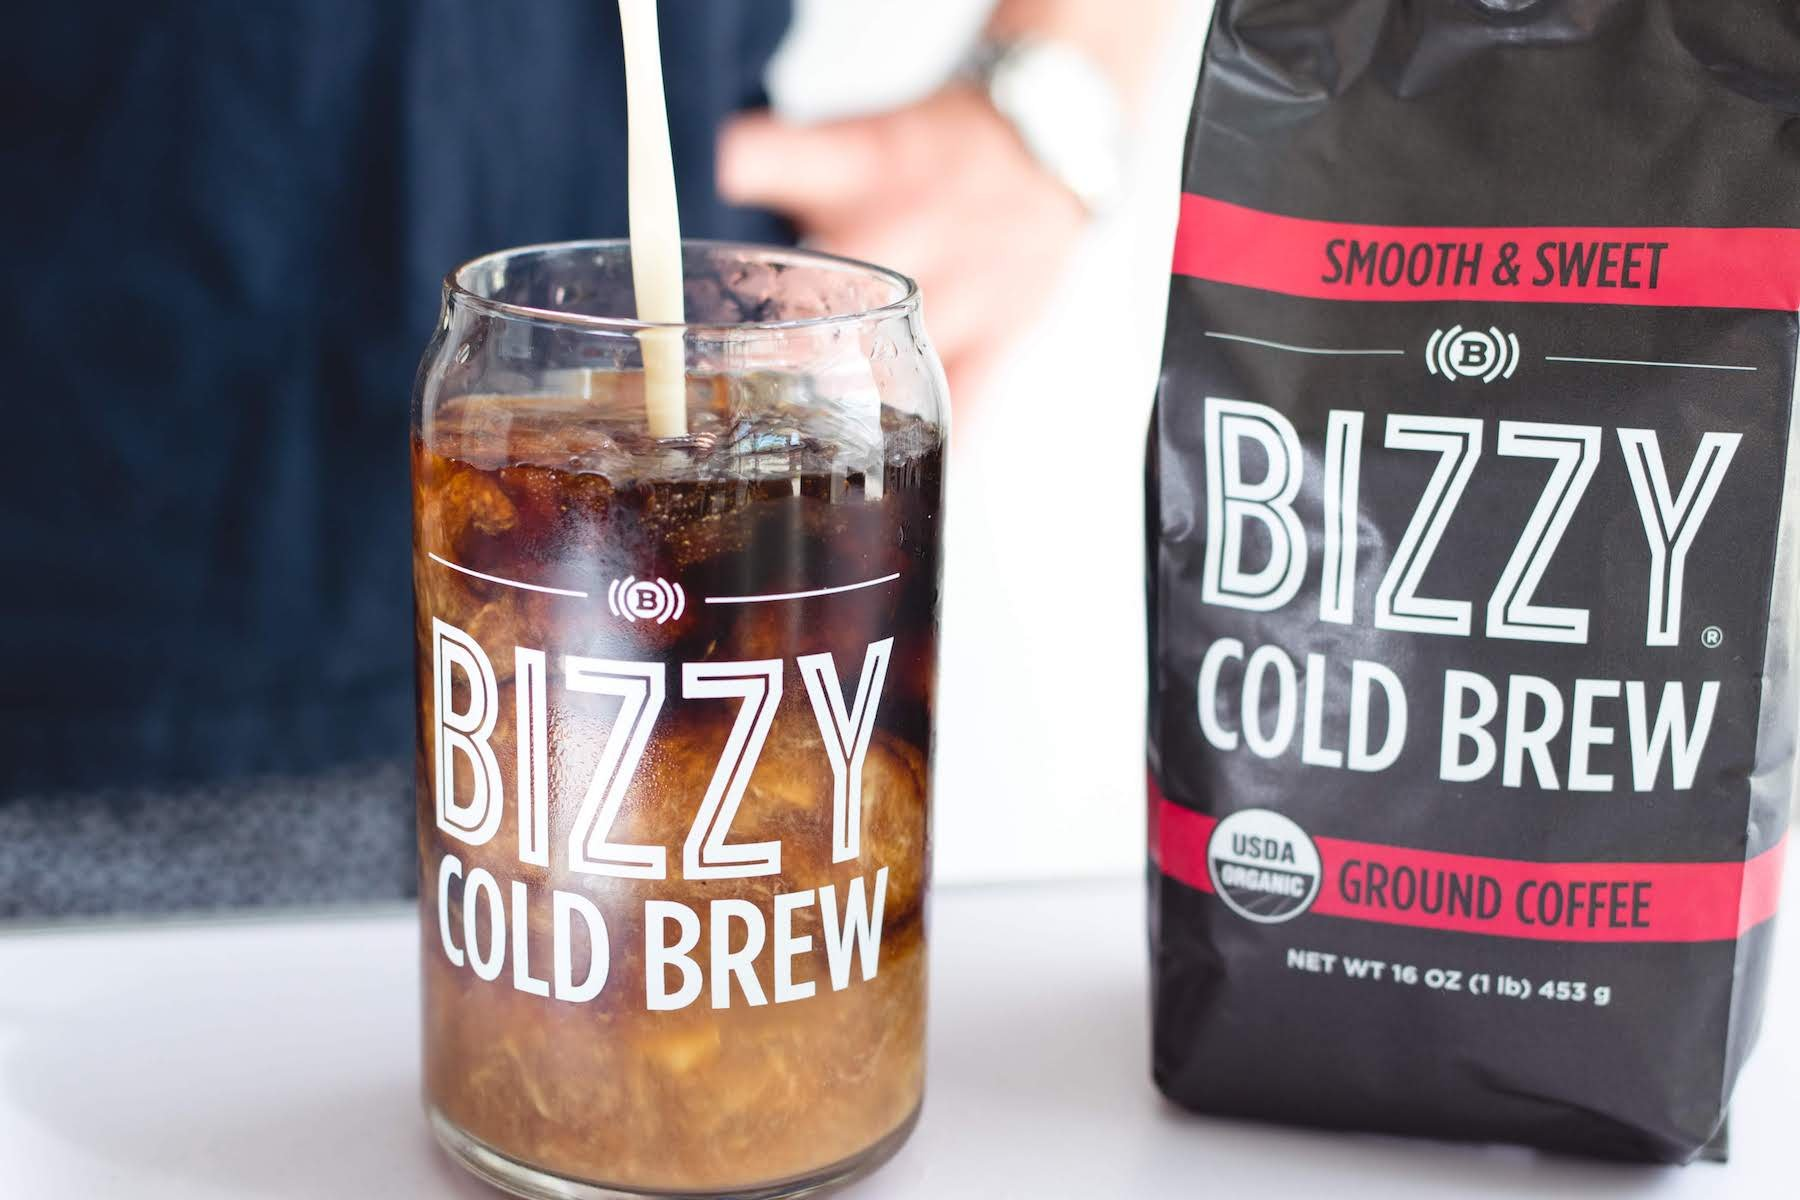 Bizzy Organic Cold Brew Coffee - Smooth & Sweet Blend - Coarse Ground Coffee - 1 Pound by Bizzy (Image #7)